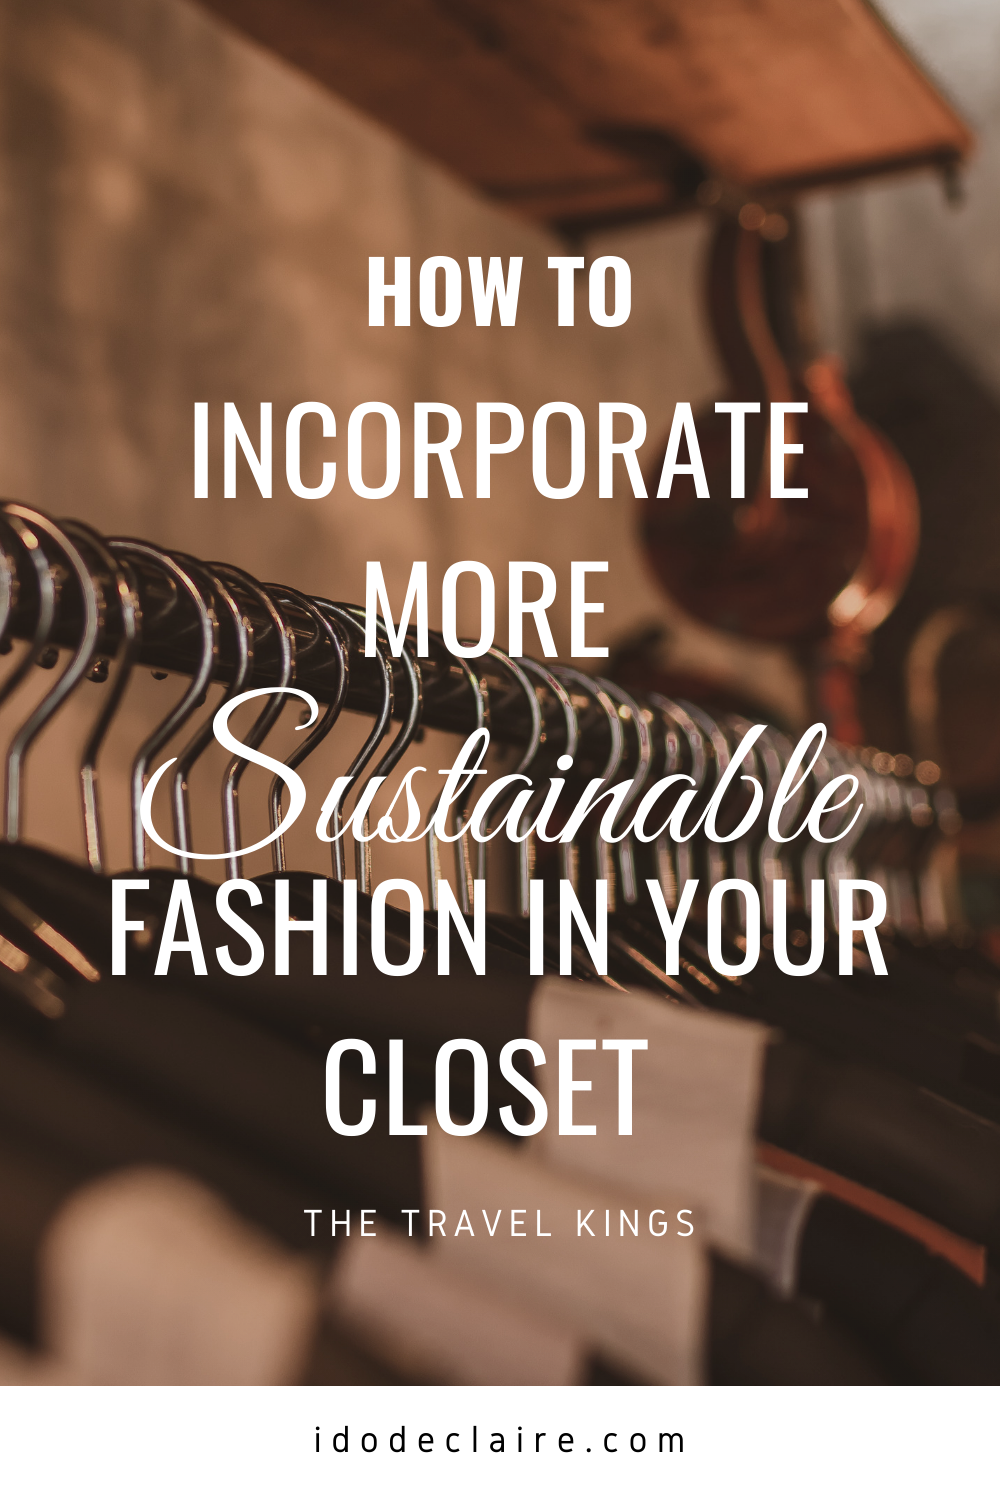 How to Incorporate More Sustainable Fashion In Your Closet